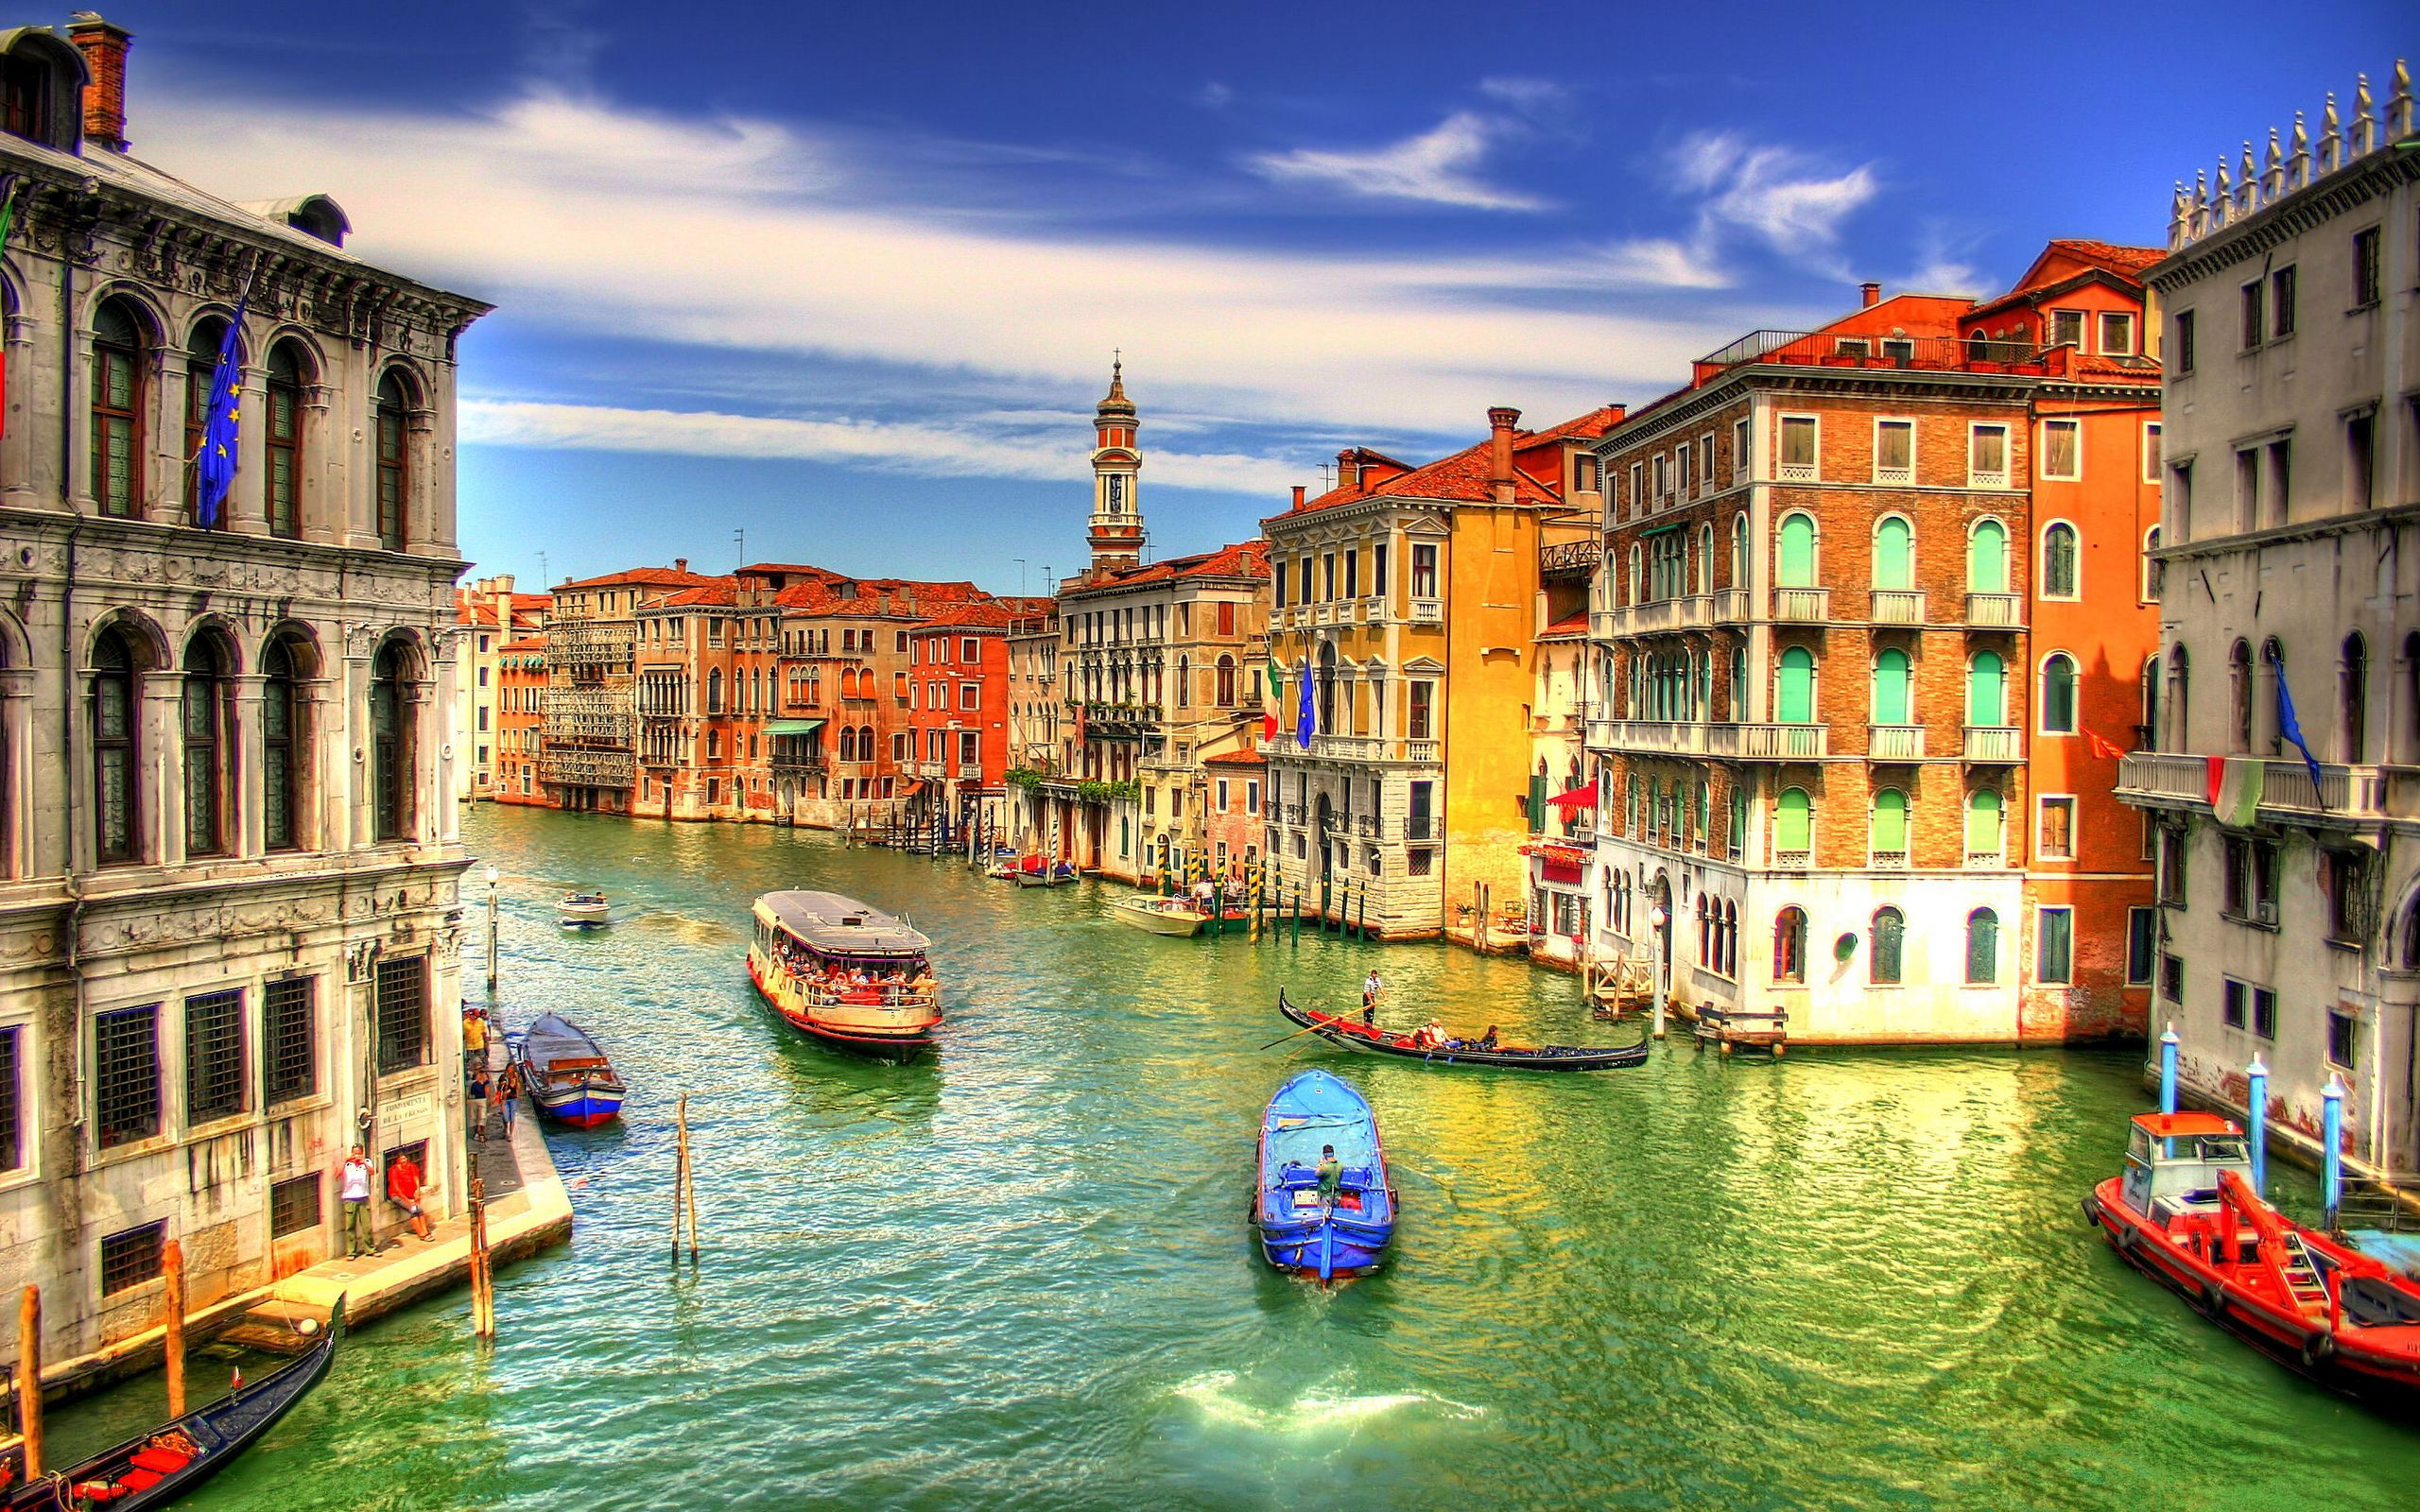 Venice italy 2560 x 1600 download close